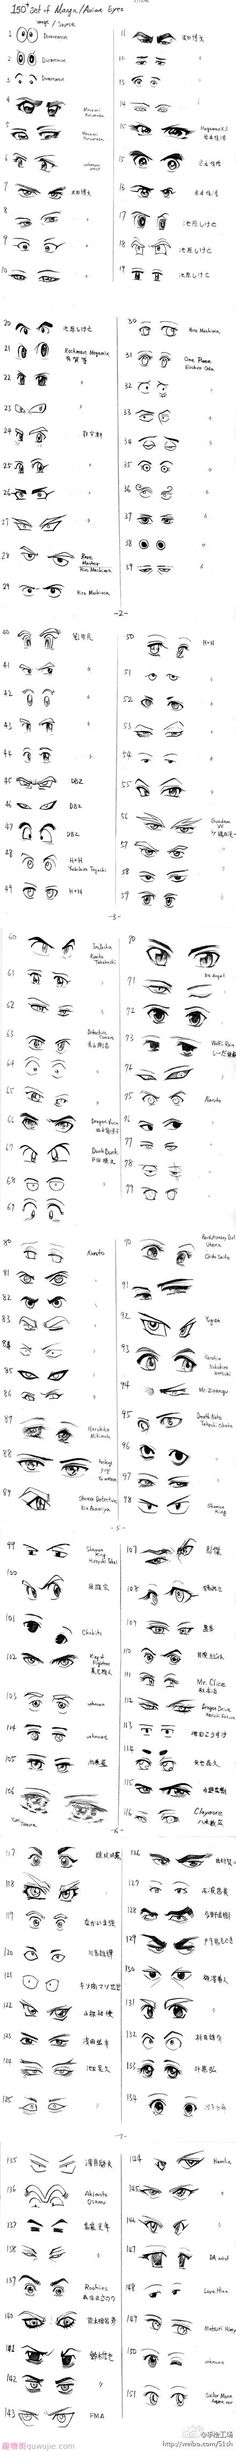 """""""the =eyes= have it!"""" what a great inspiration to draw!"""